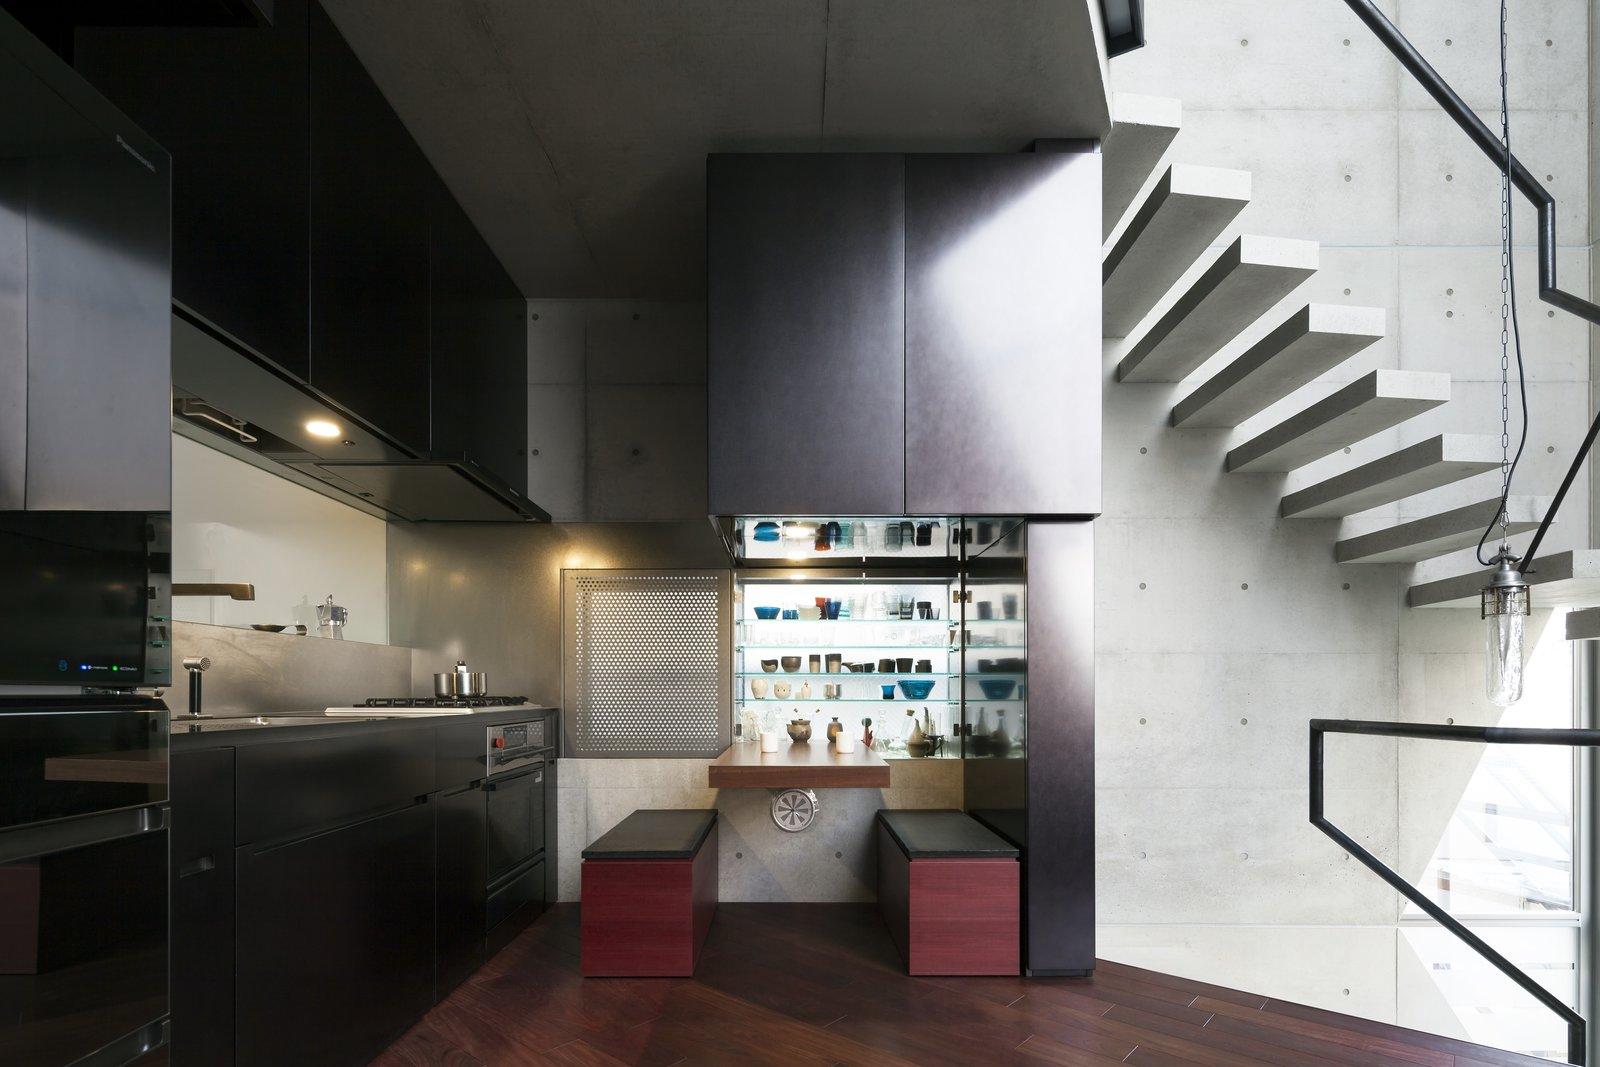 Kitchen, Range, Dark Hardwood Floor, Pendant Lighting, Range Hood, Metal Cabinet, and Undermount Sink  Photo 7 of 16 in A Concrete Micro-House in Japan Works All the Angles